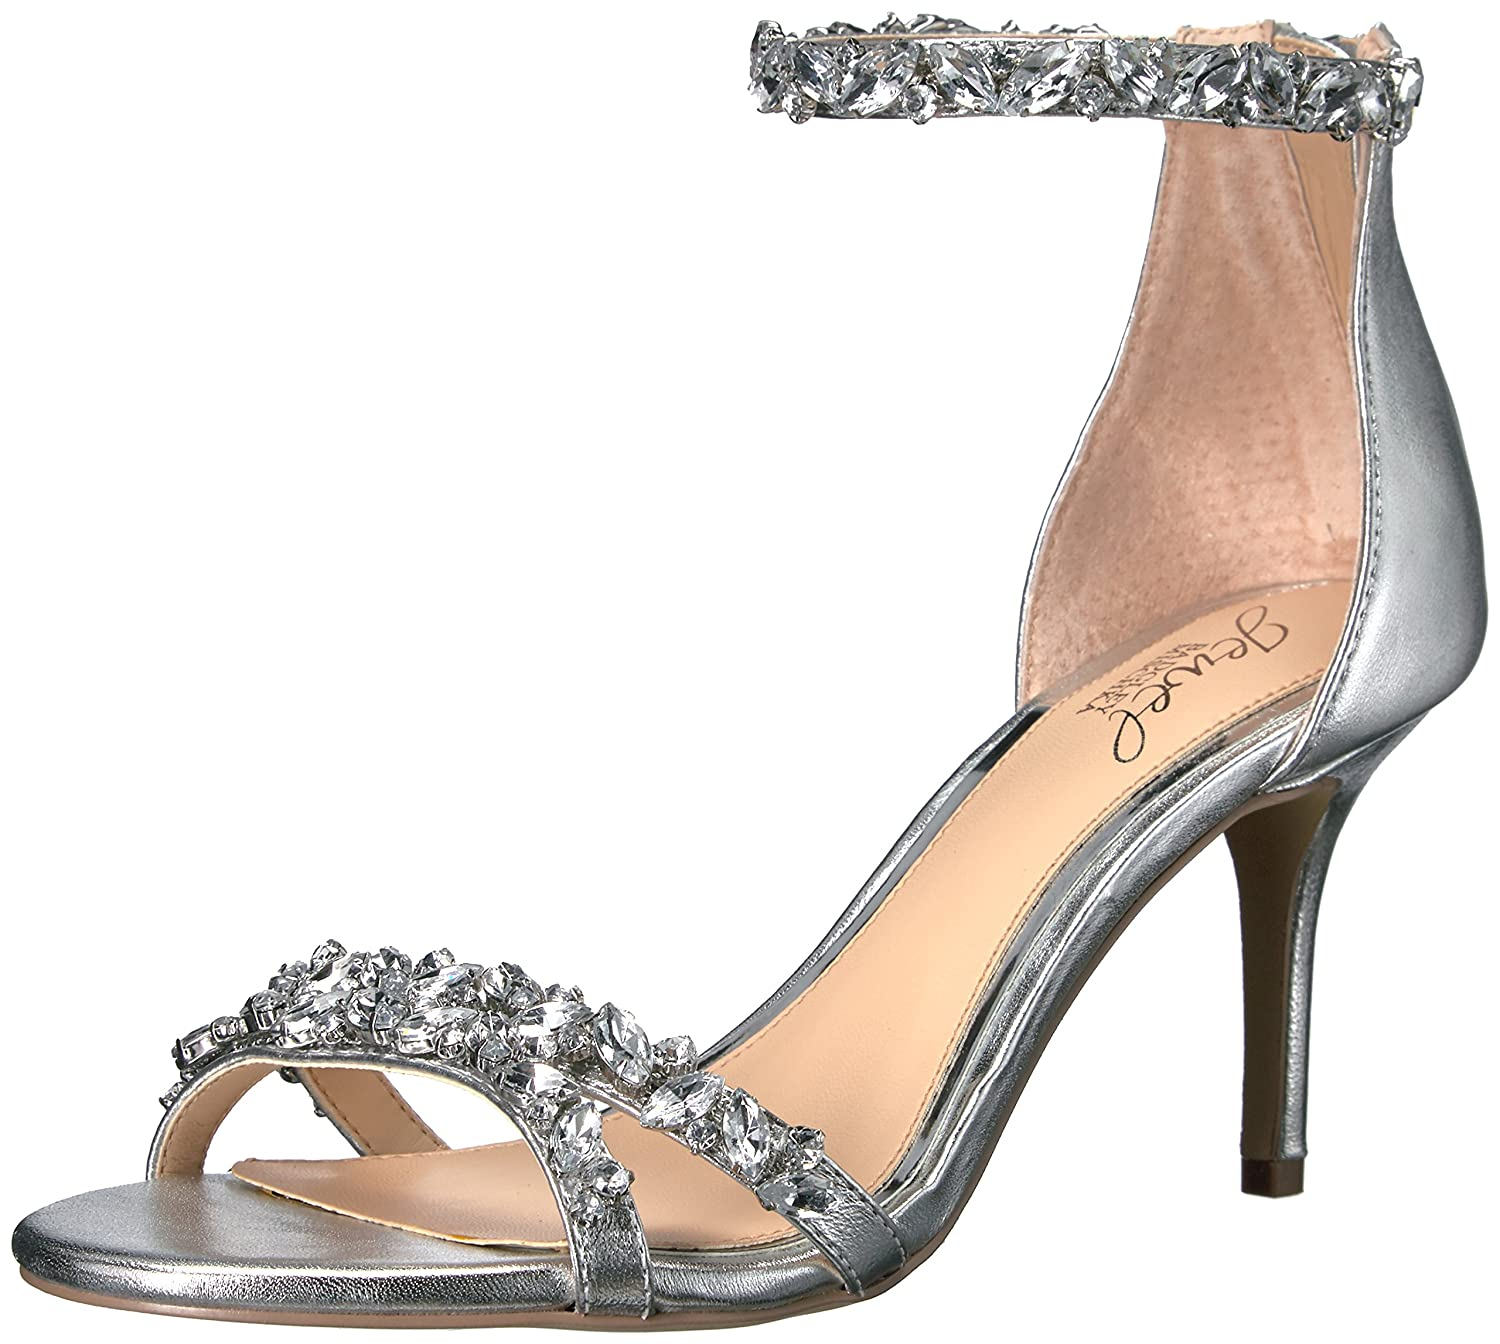 Jewel Badgley Mischka Women's Caroline Dress Sandal